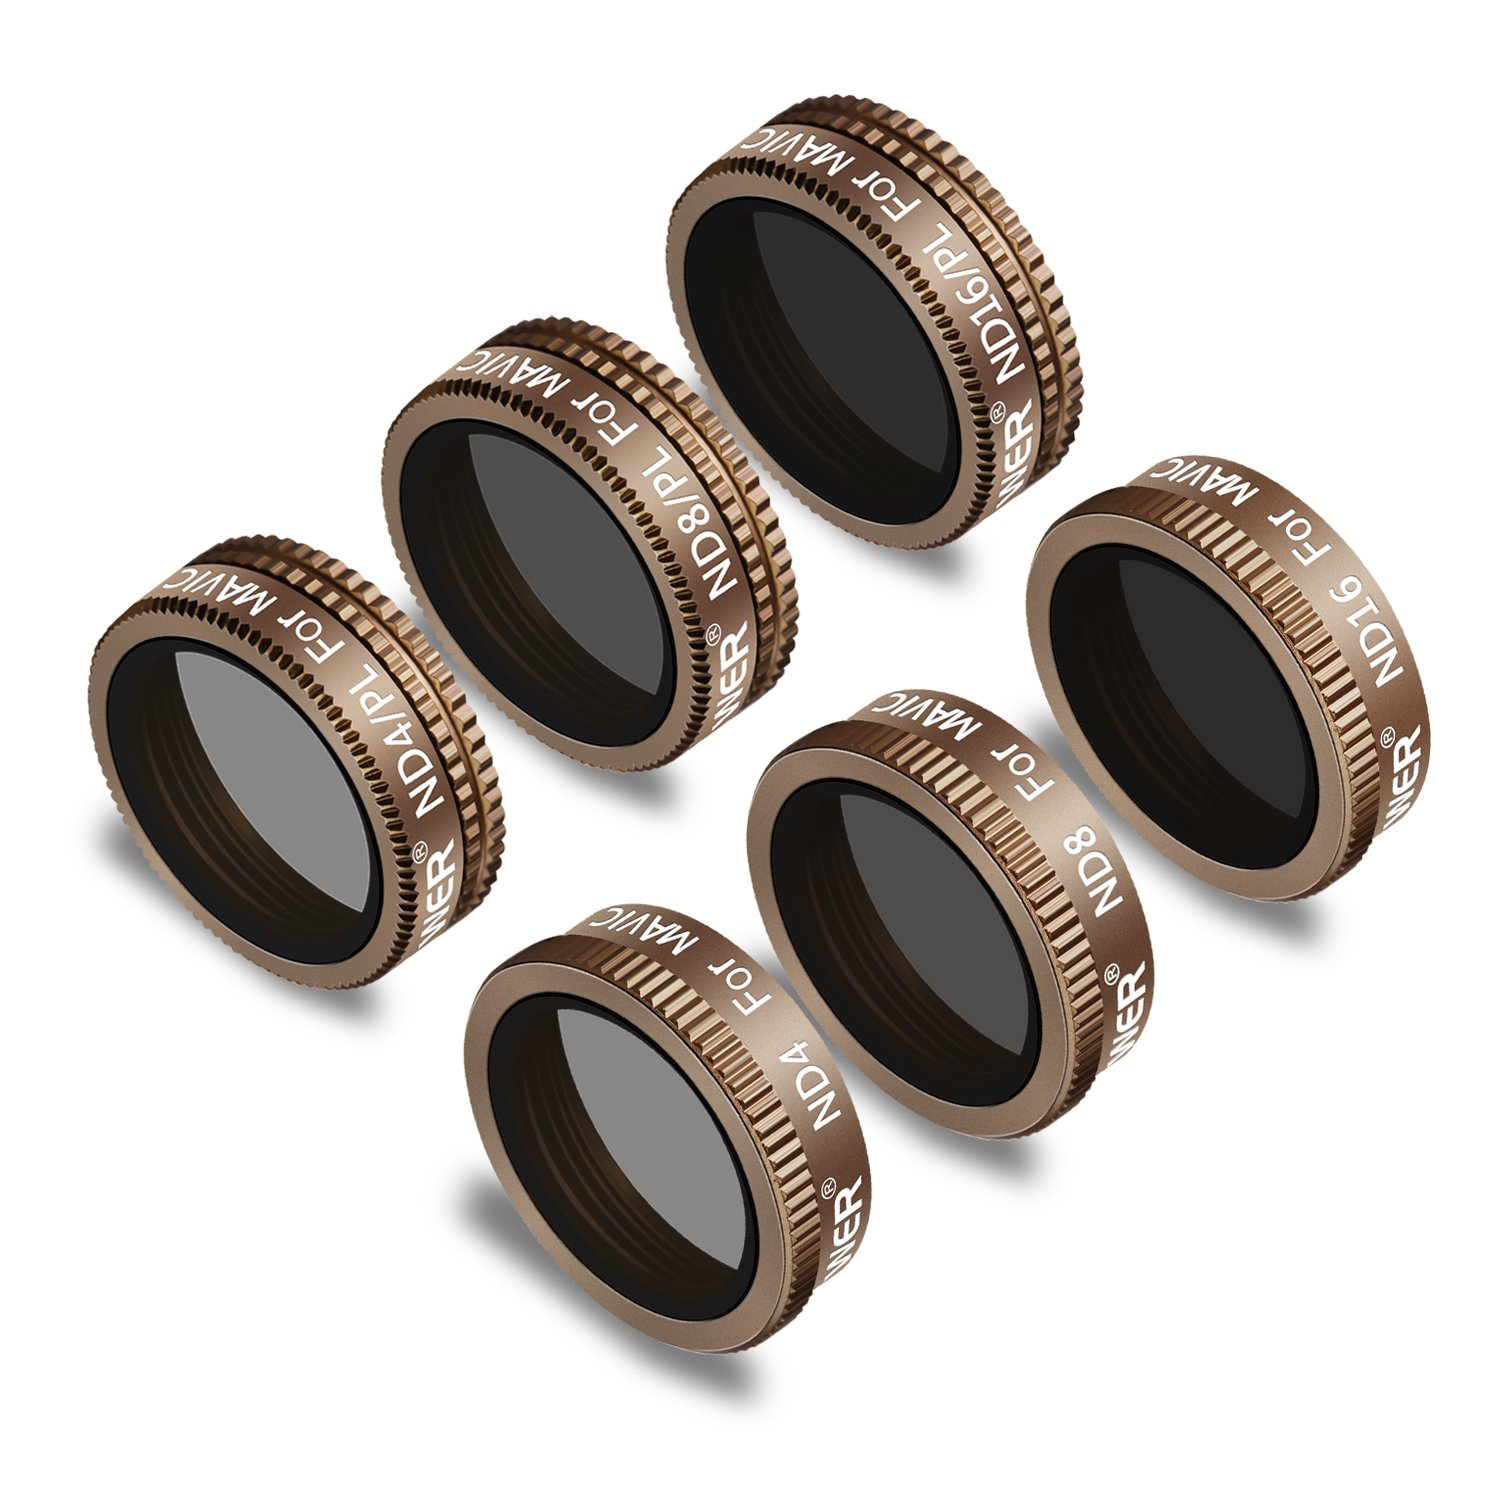 Neewer 6 Pieces Pro Lens Filter Kit for DJI Mavic Air Drone Quadcopter Includes: ND4, ND8, ND16, ND4/PL, ND8/PL, ND16/PL, Made of Multi Coated Waterproof Aluminum Alloy Frame Optical Glass(Gold) by Neewer